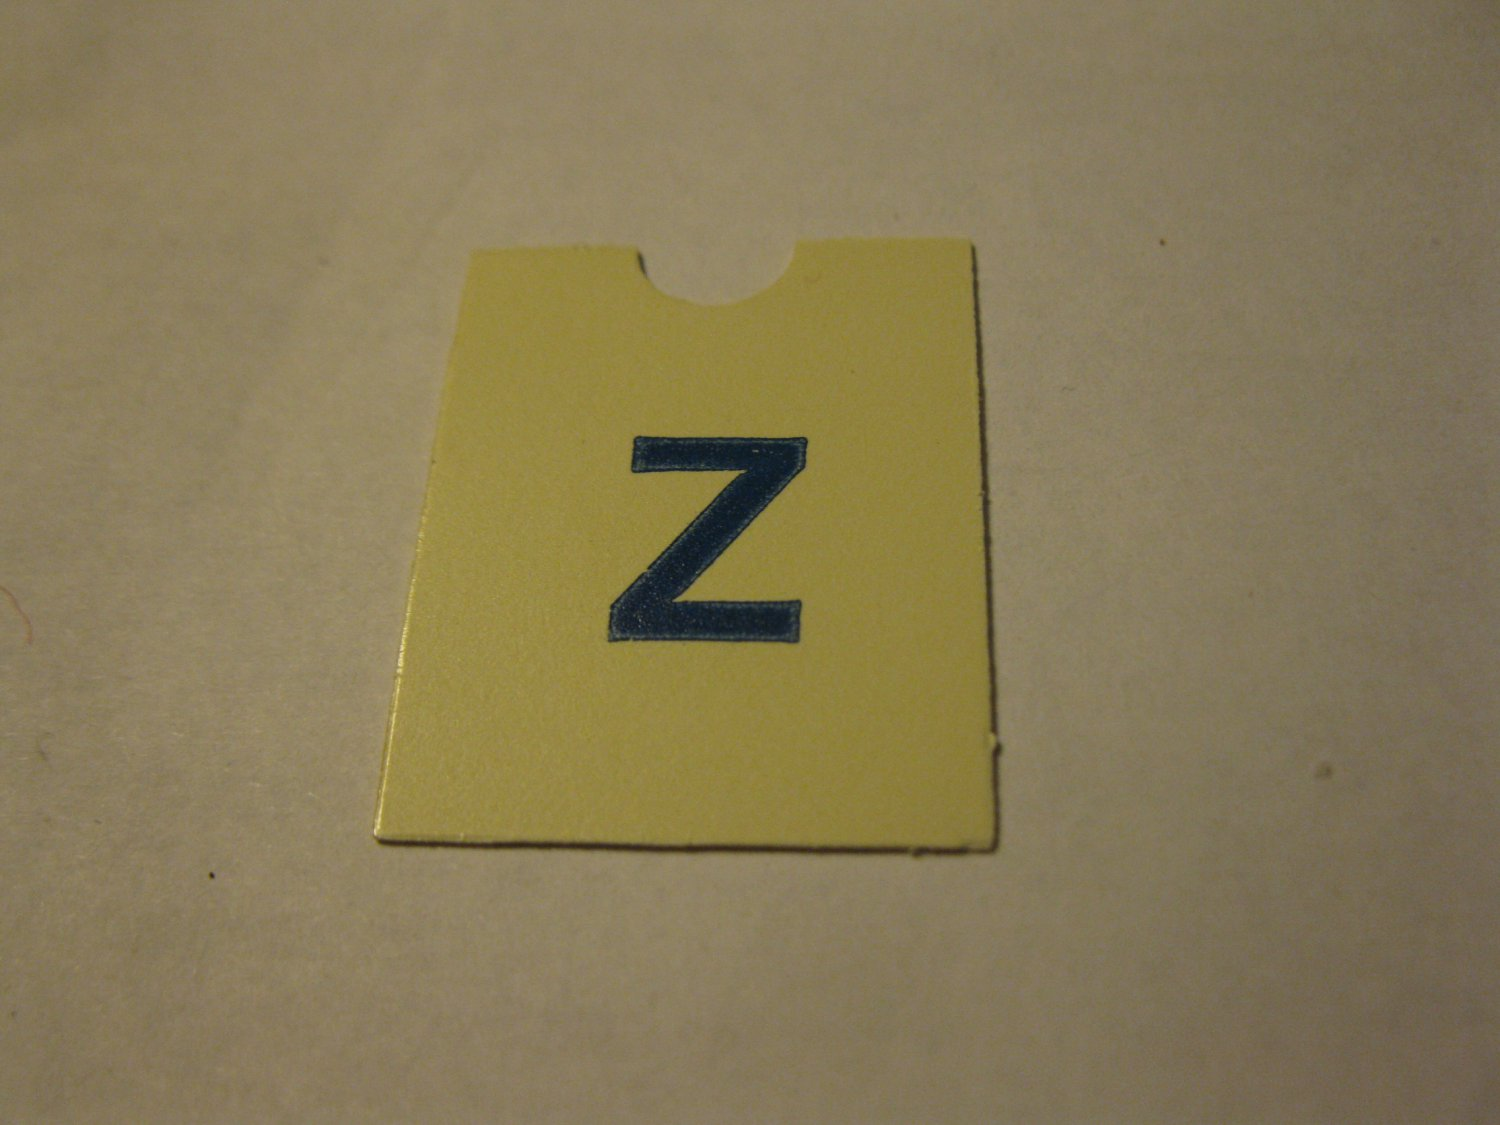 1967 4CYTE Board Game Piece: Blue Letter Tab - Z